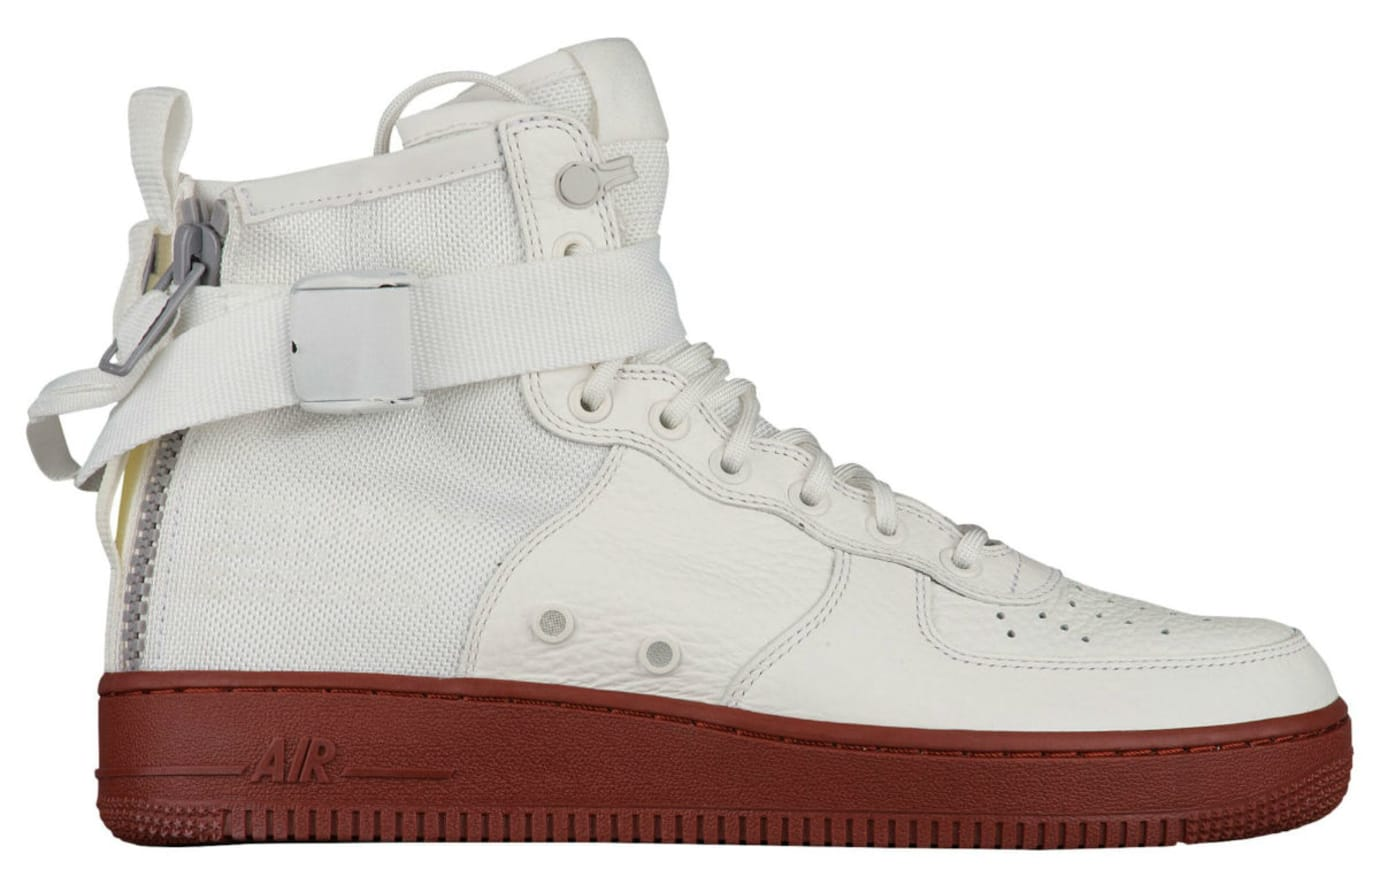 Nike SF Air Force 1 Mid Ivory Dark Red Release Date Profile 917753-100